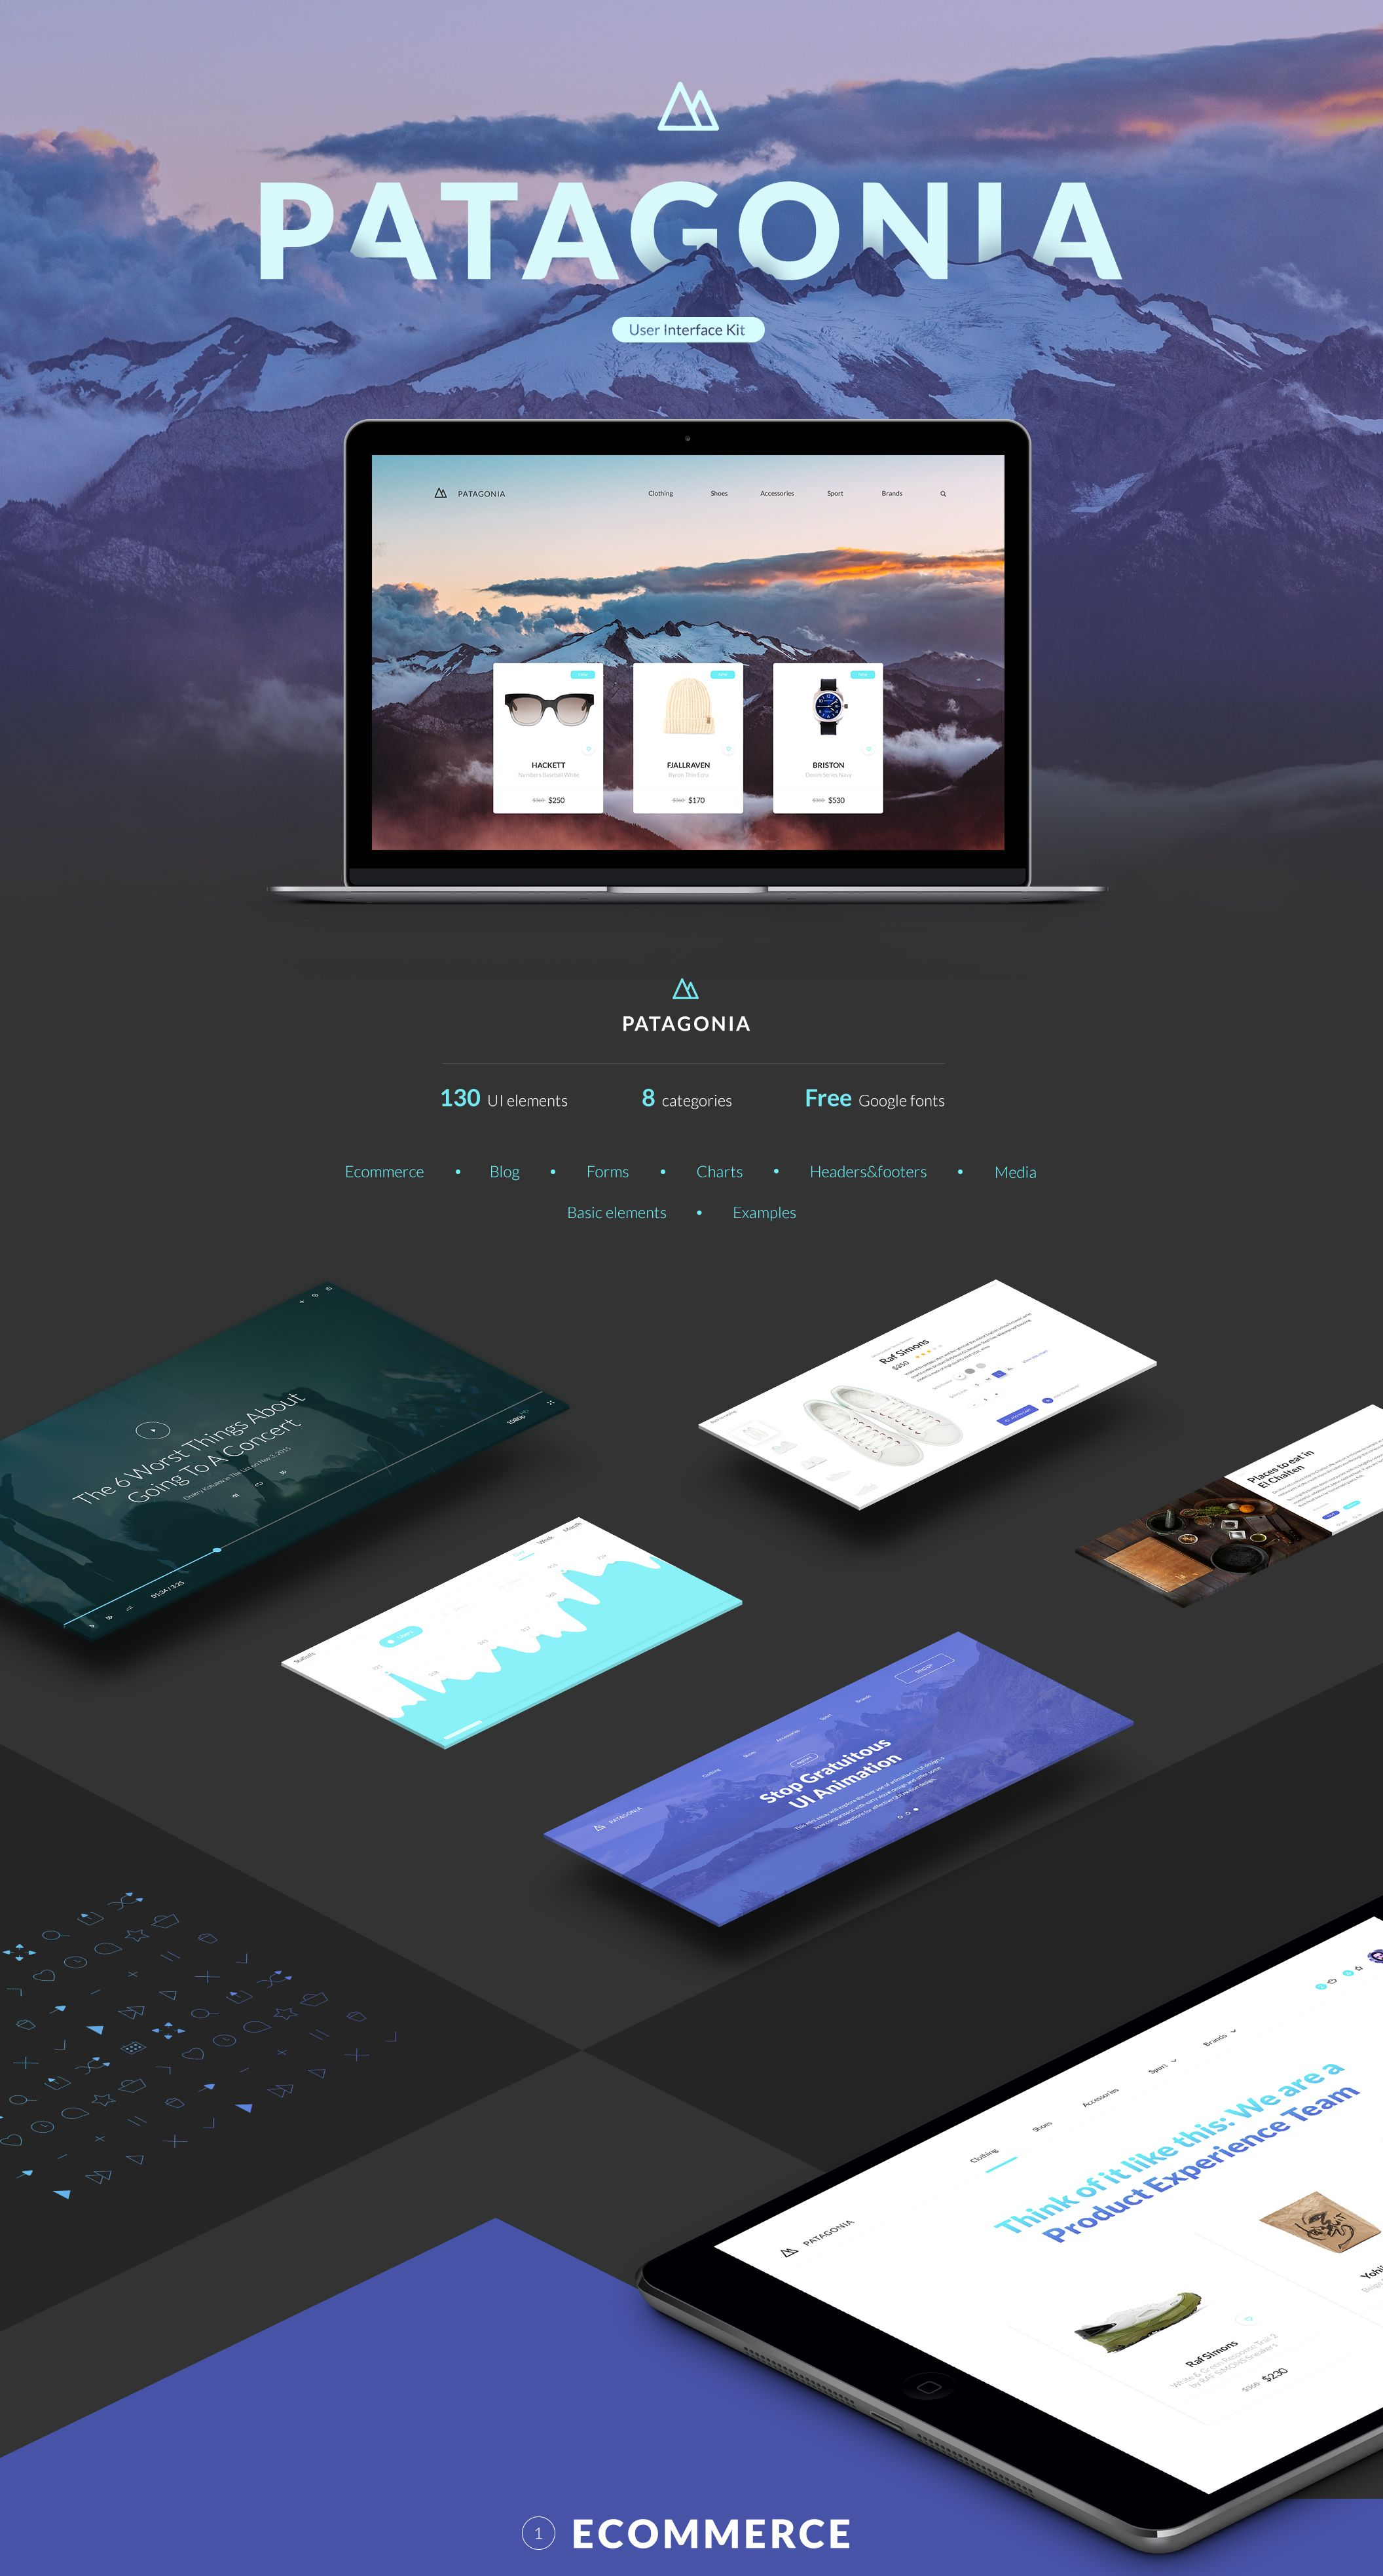 Patagonia UI is a web Ecommerce UI Kit crafted in Photoshop, using a